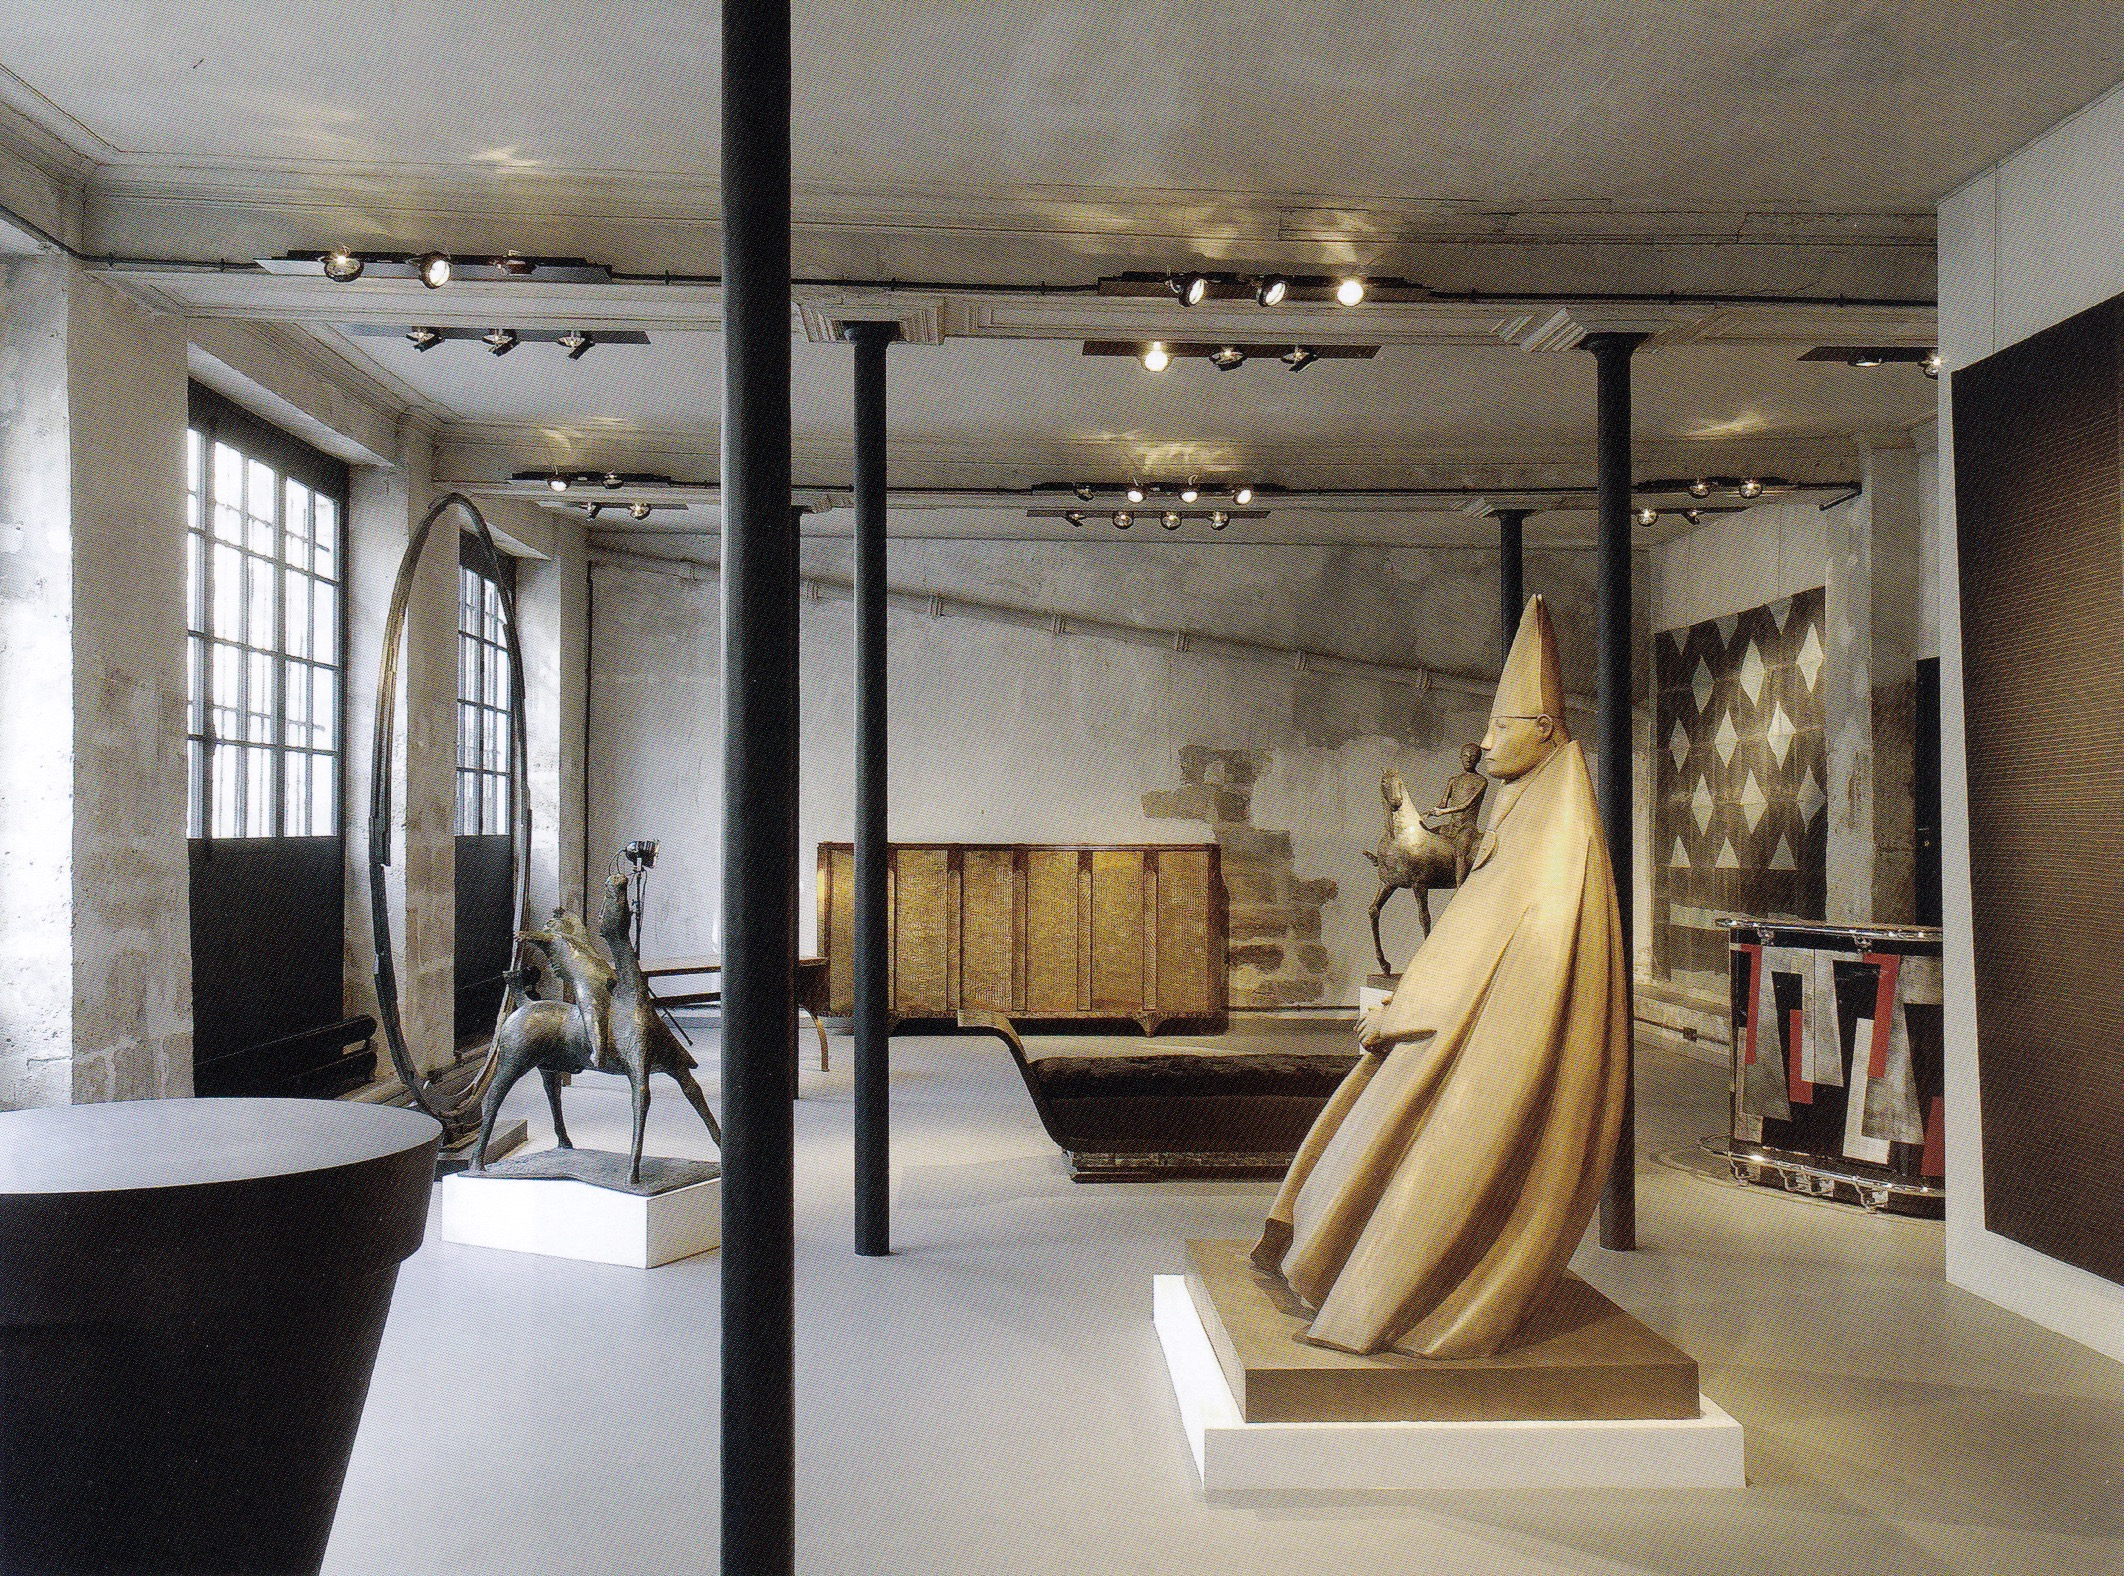 The 2008 exhibition of works by Marino Marini and Giacomo Manzù at Galerie Dutko, Paris, 2008, in honour of the 100. Cardinal, now in the collection of the New Orleans Museum of Art.